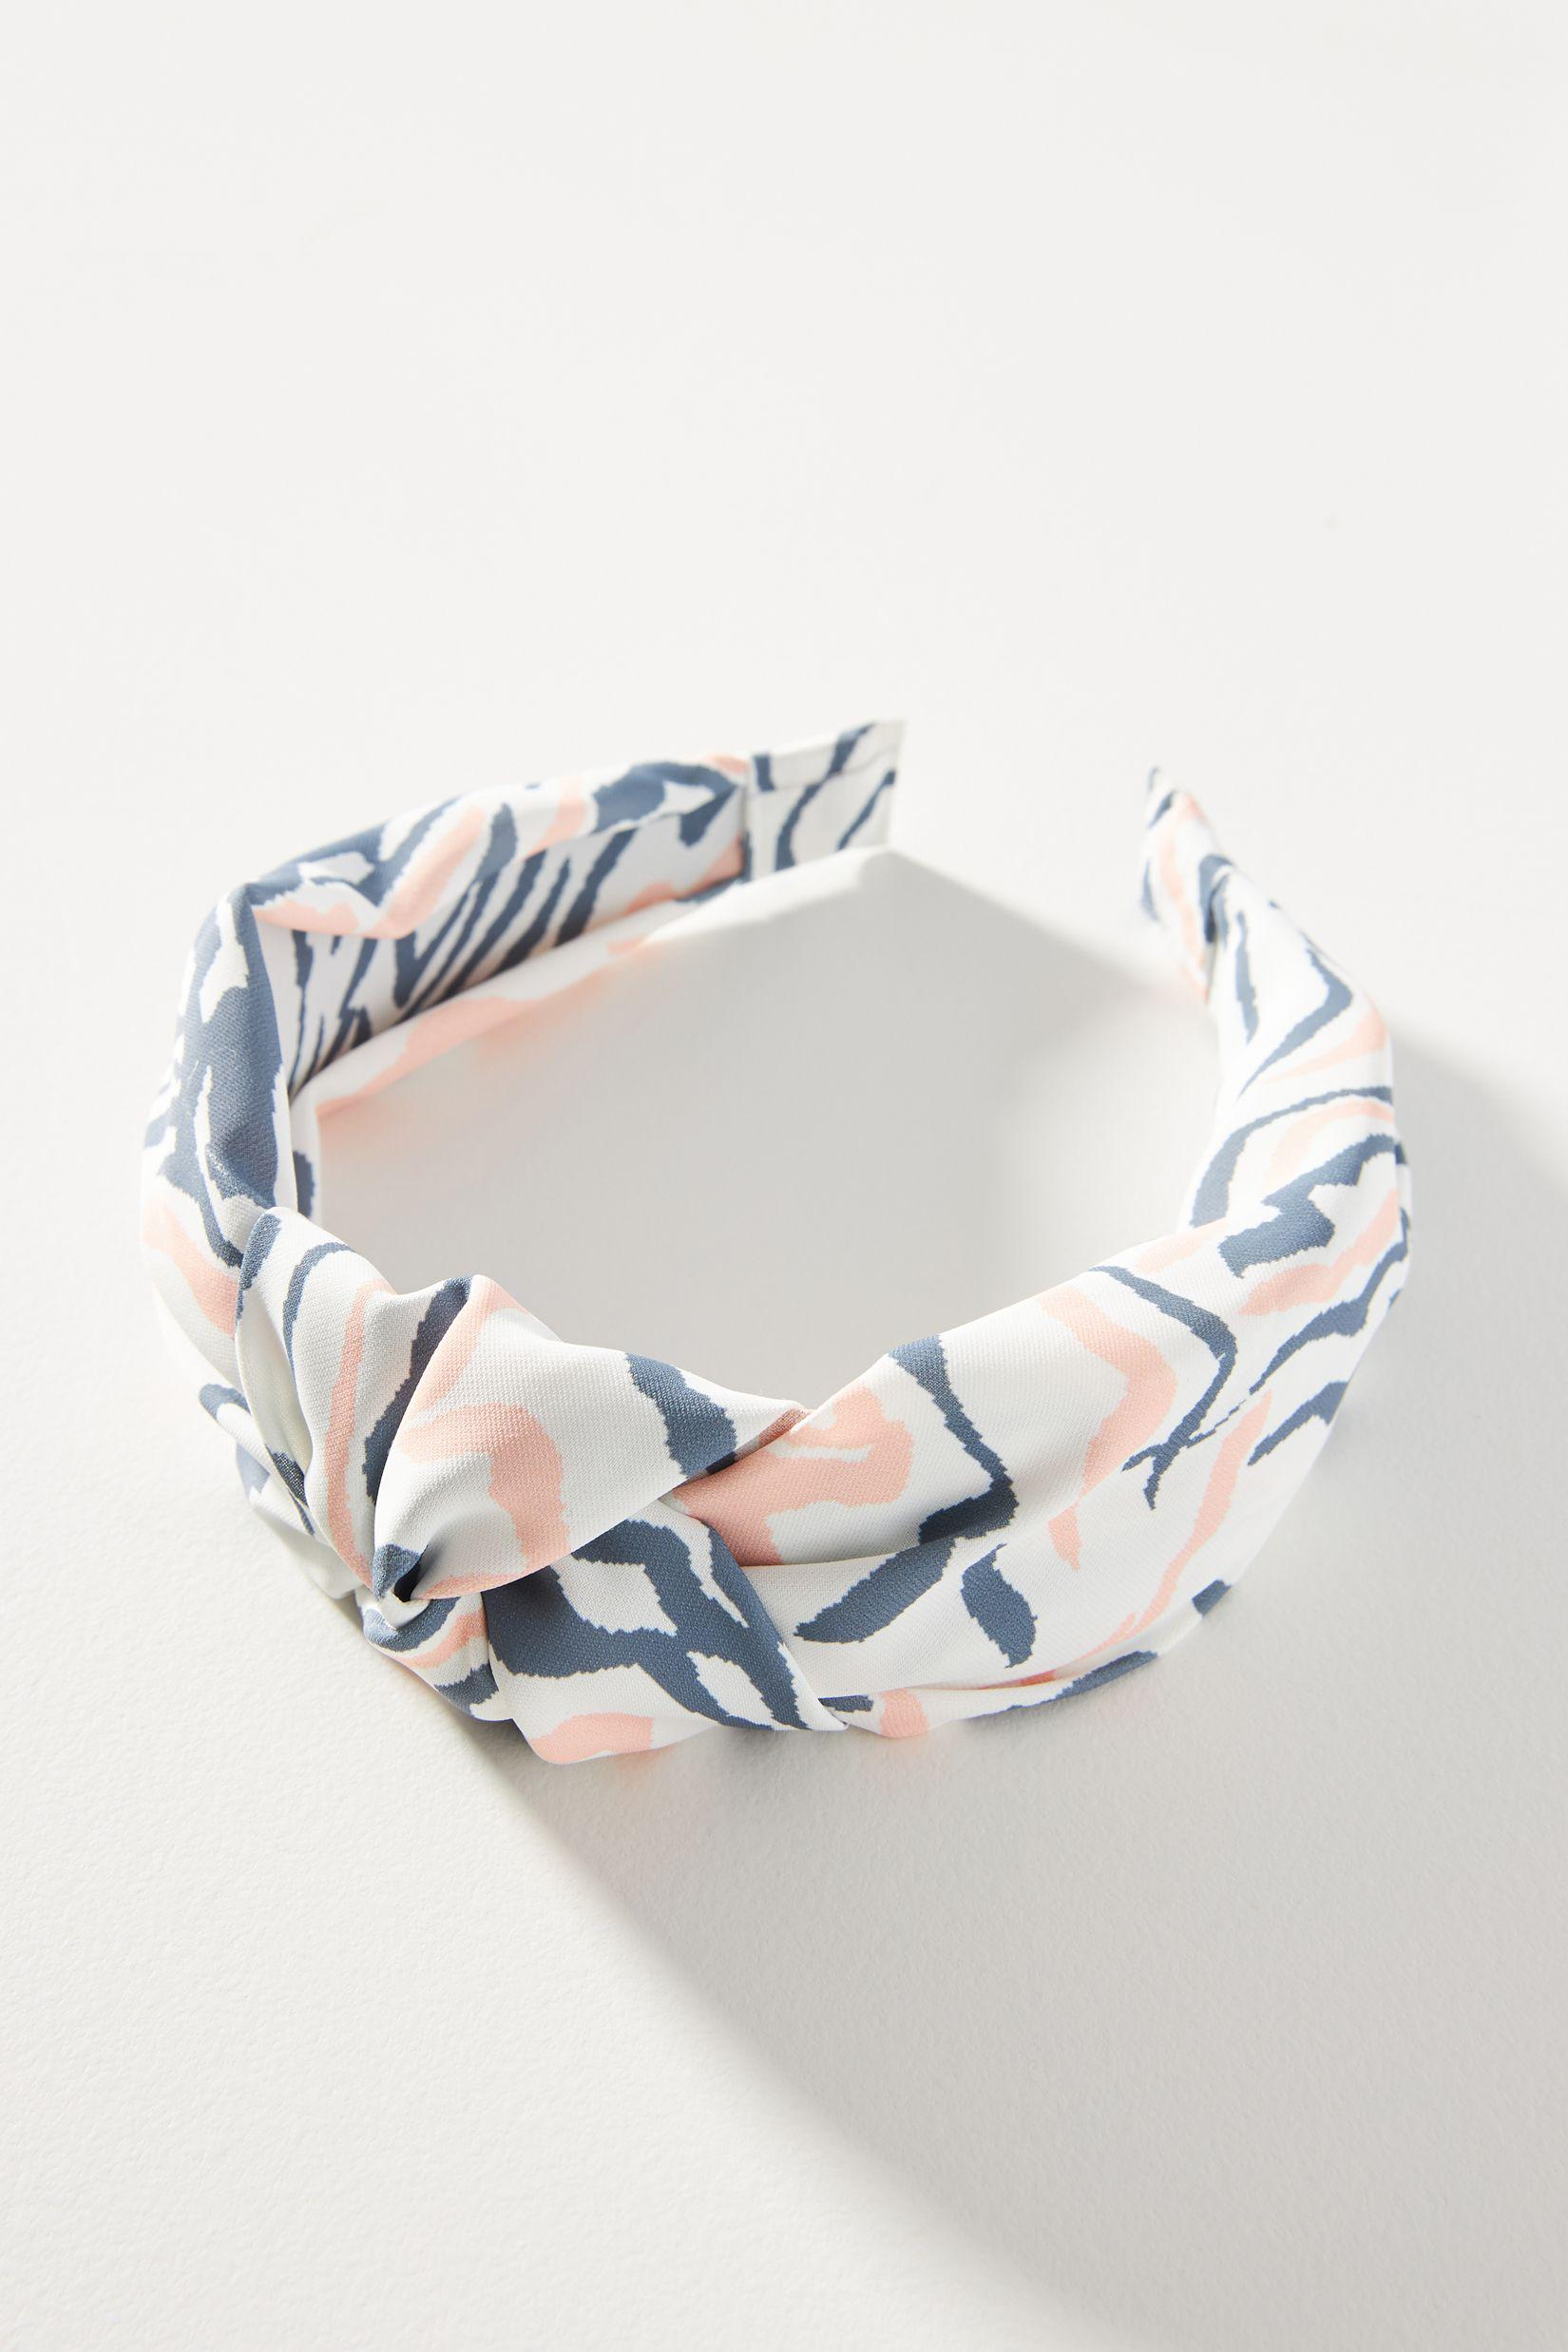 Squiggle Knotted Headband